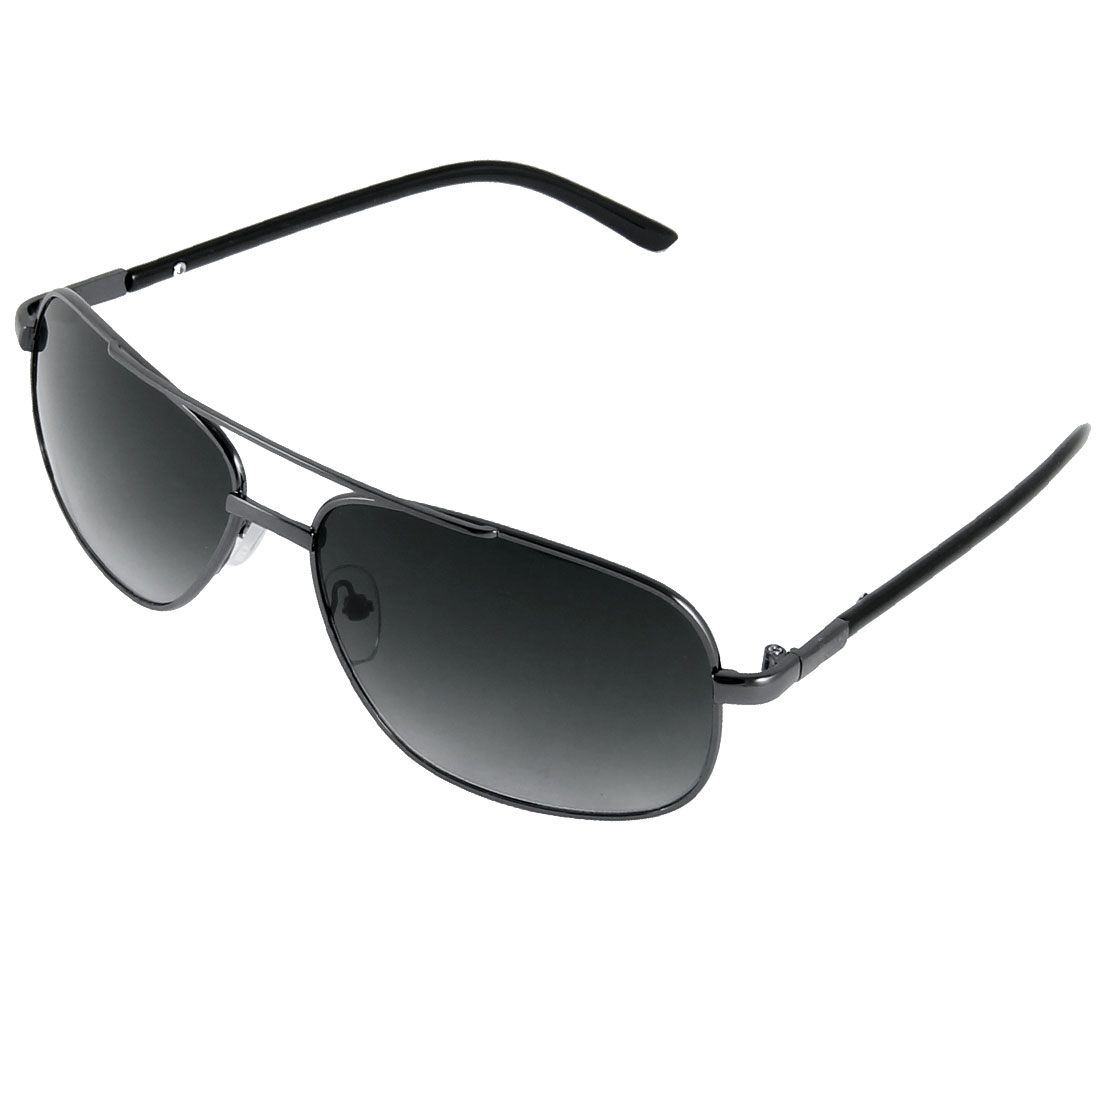 Full Rim Tinted Lens Double Bridge Sport Sunglasses for Man